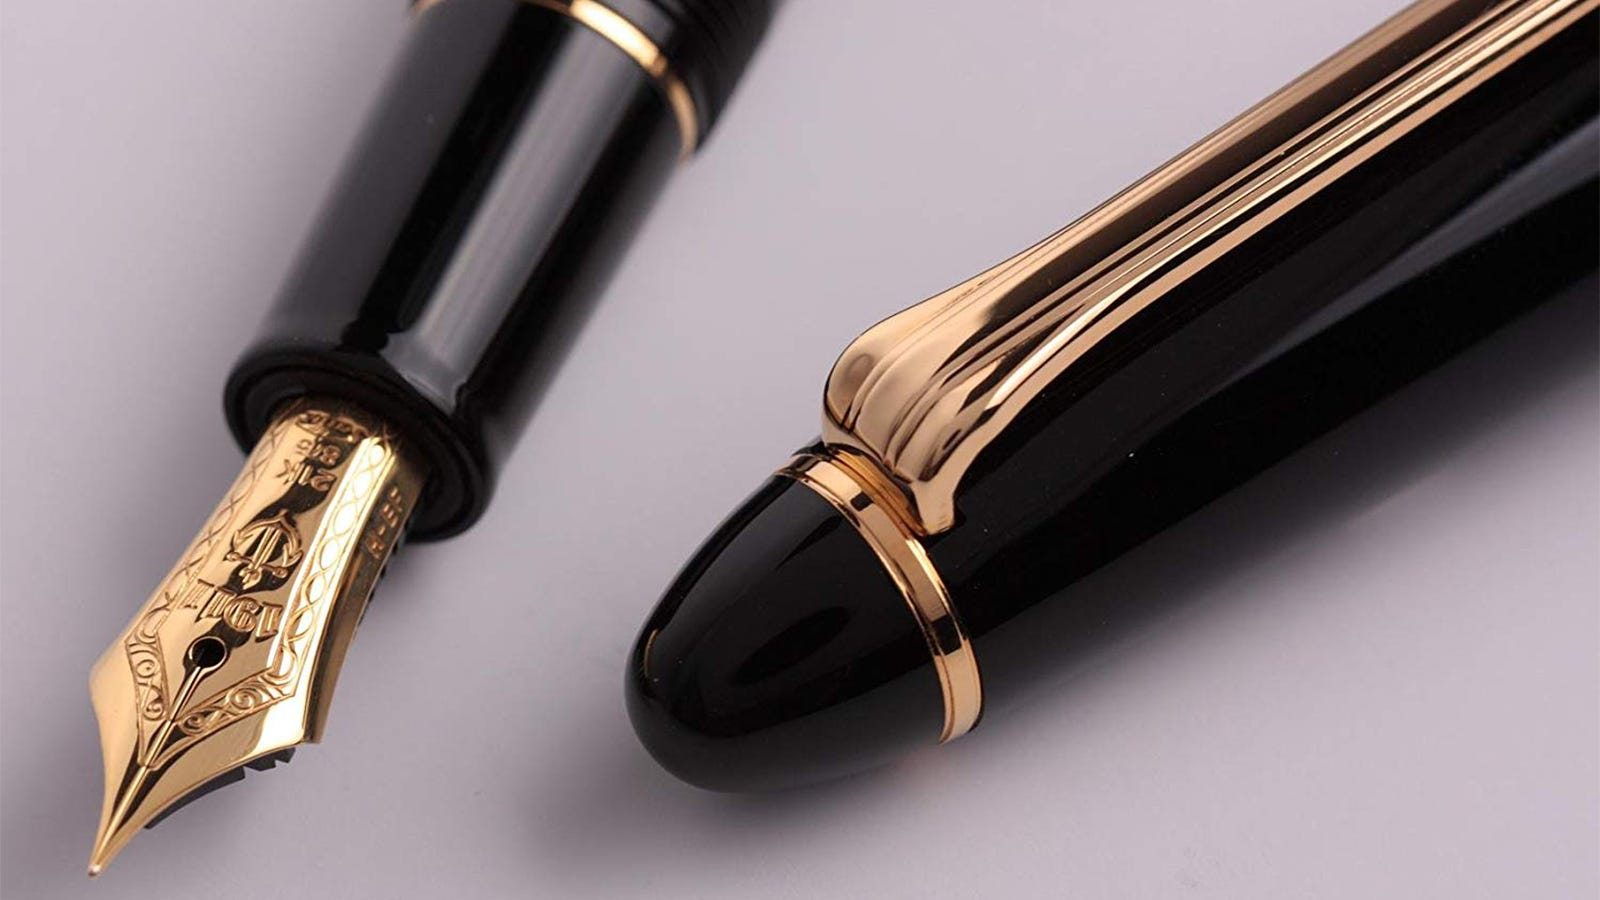 The gold-plated nib and cap of the Sailor Profit Fountain Pen in Black.